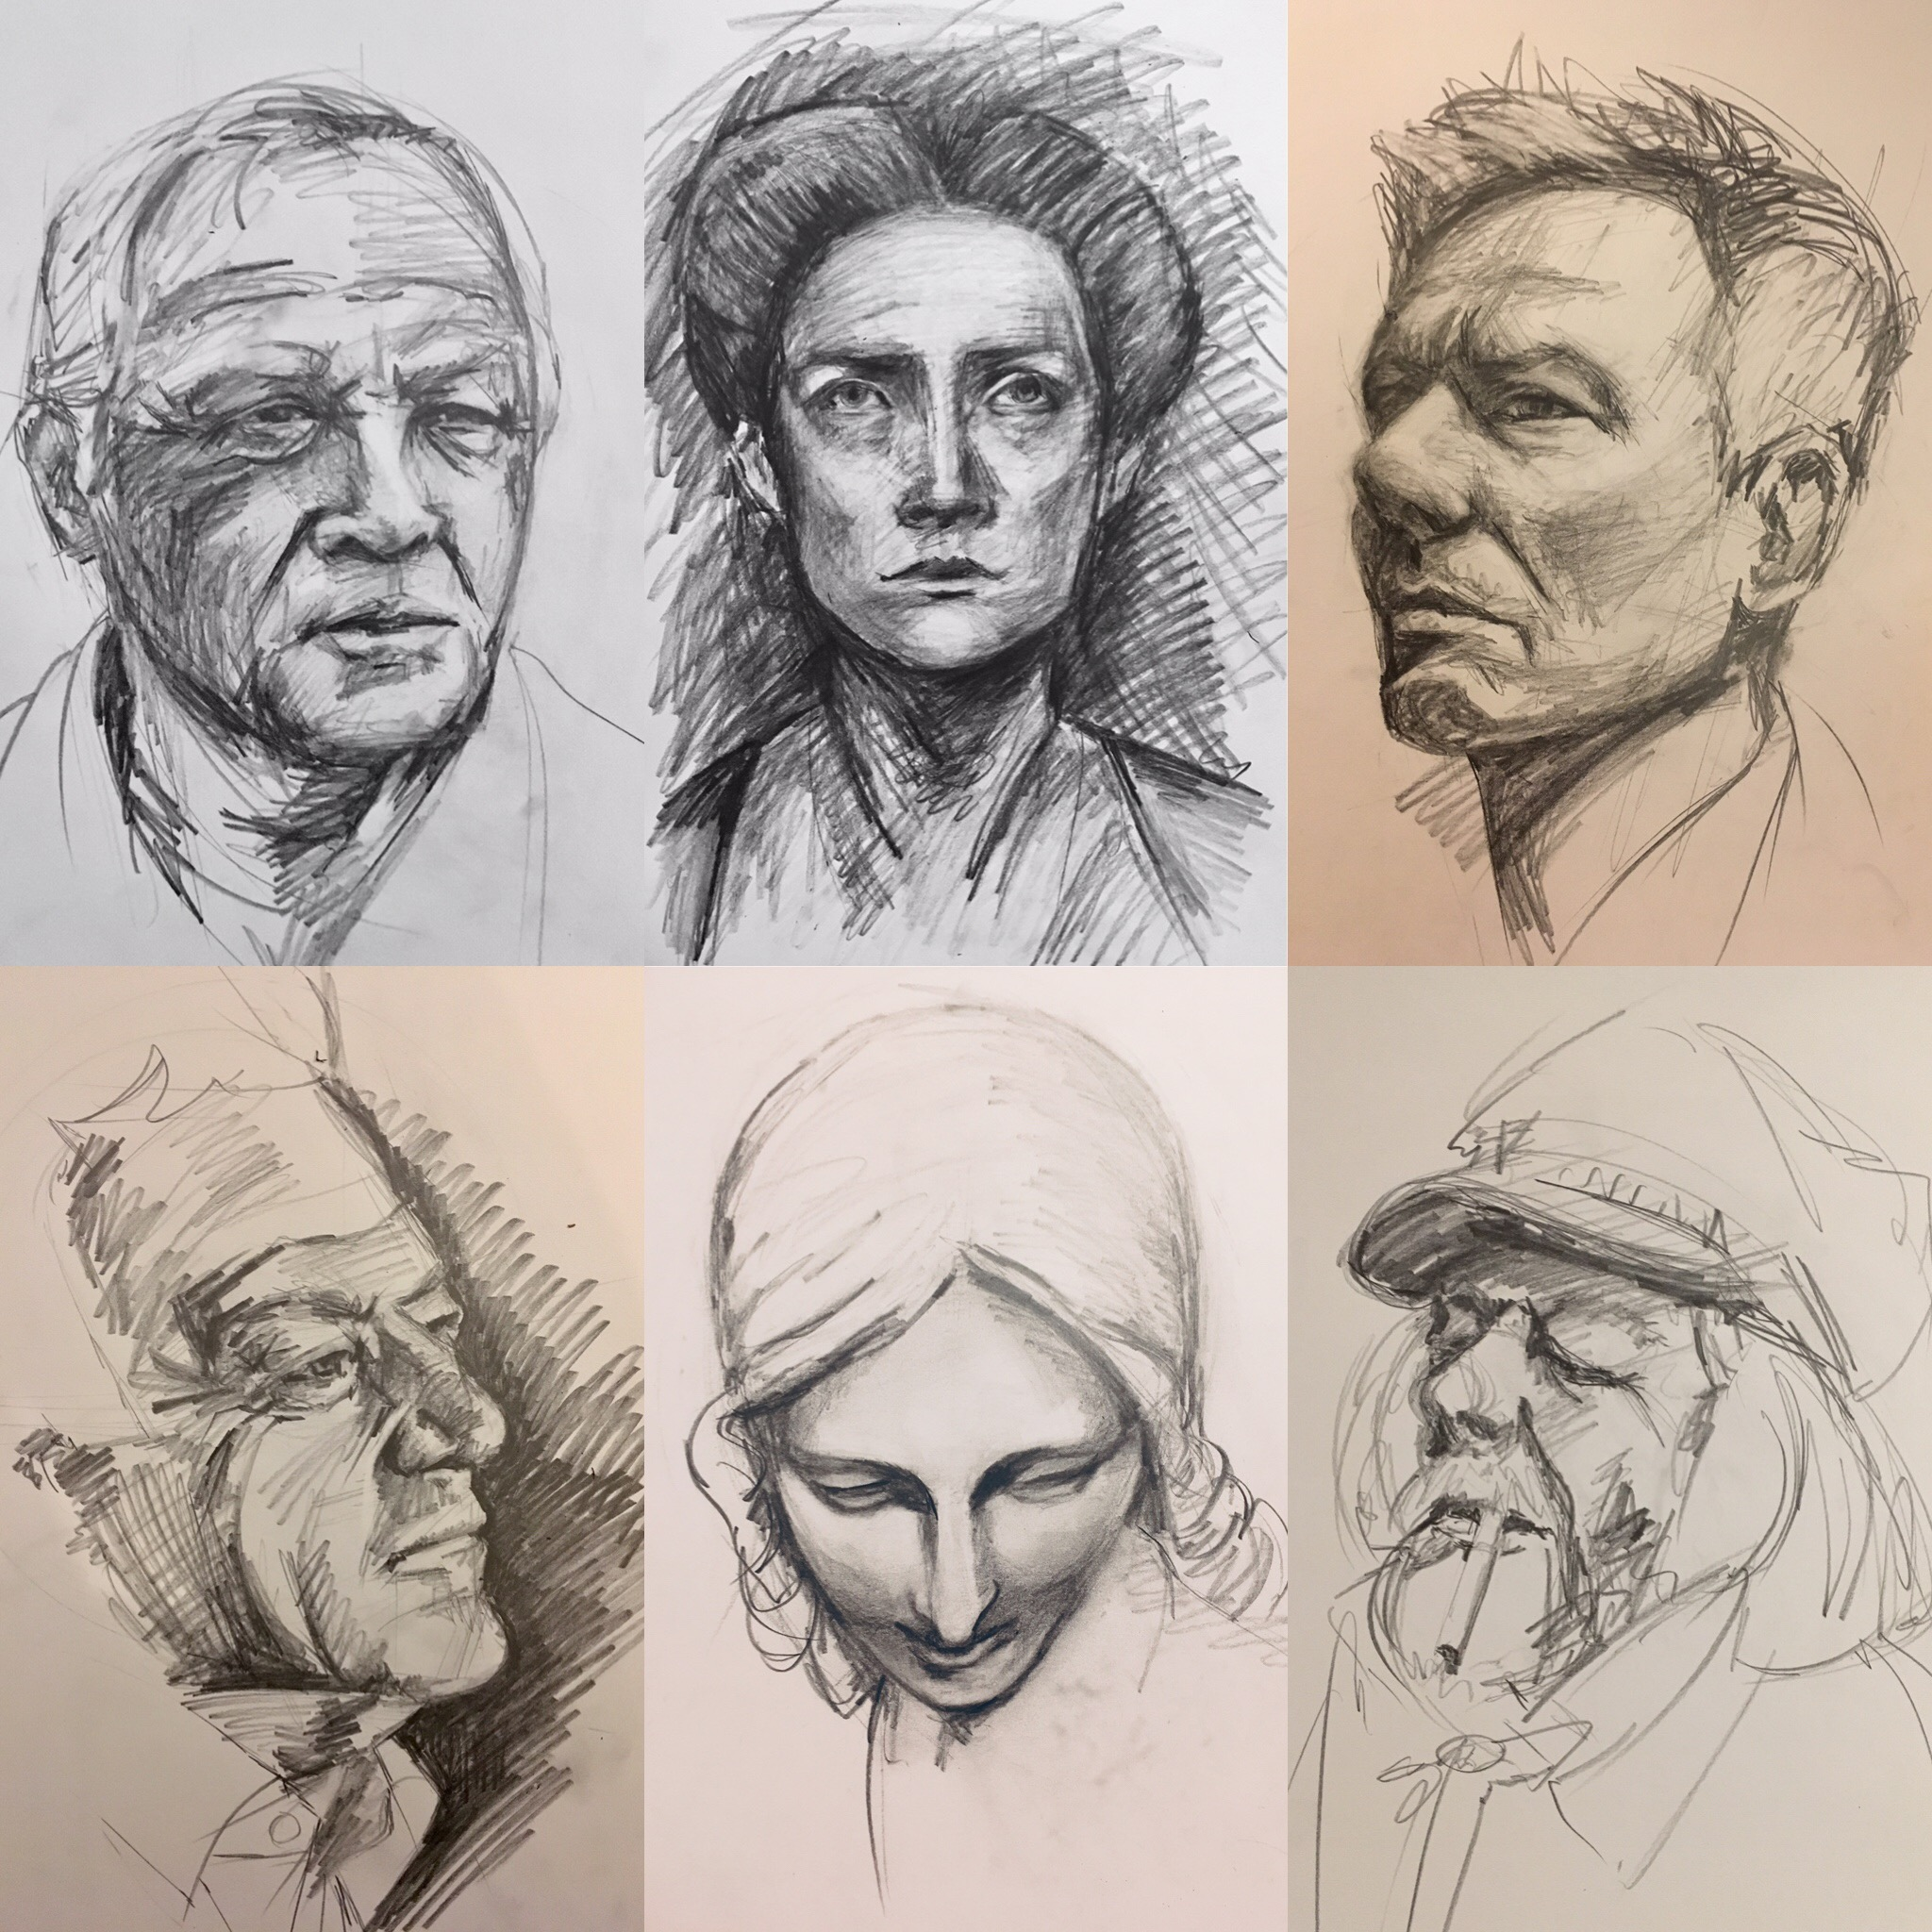 A selection of my sketches so far in 2019